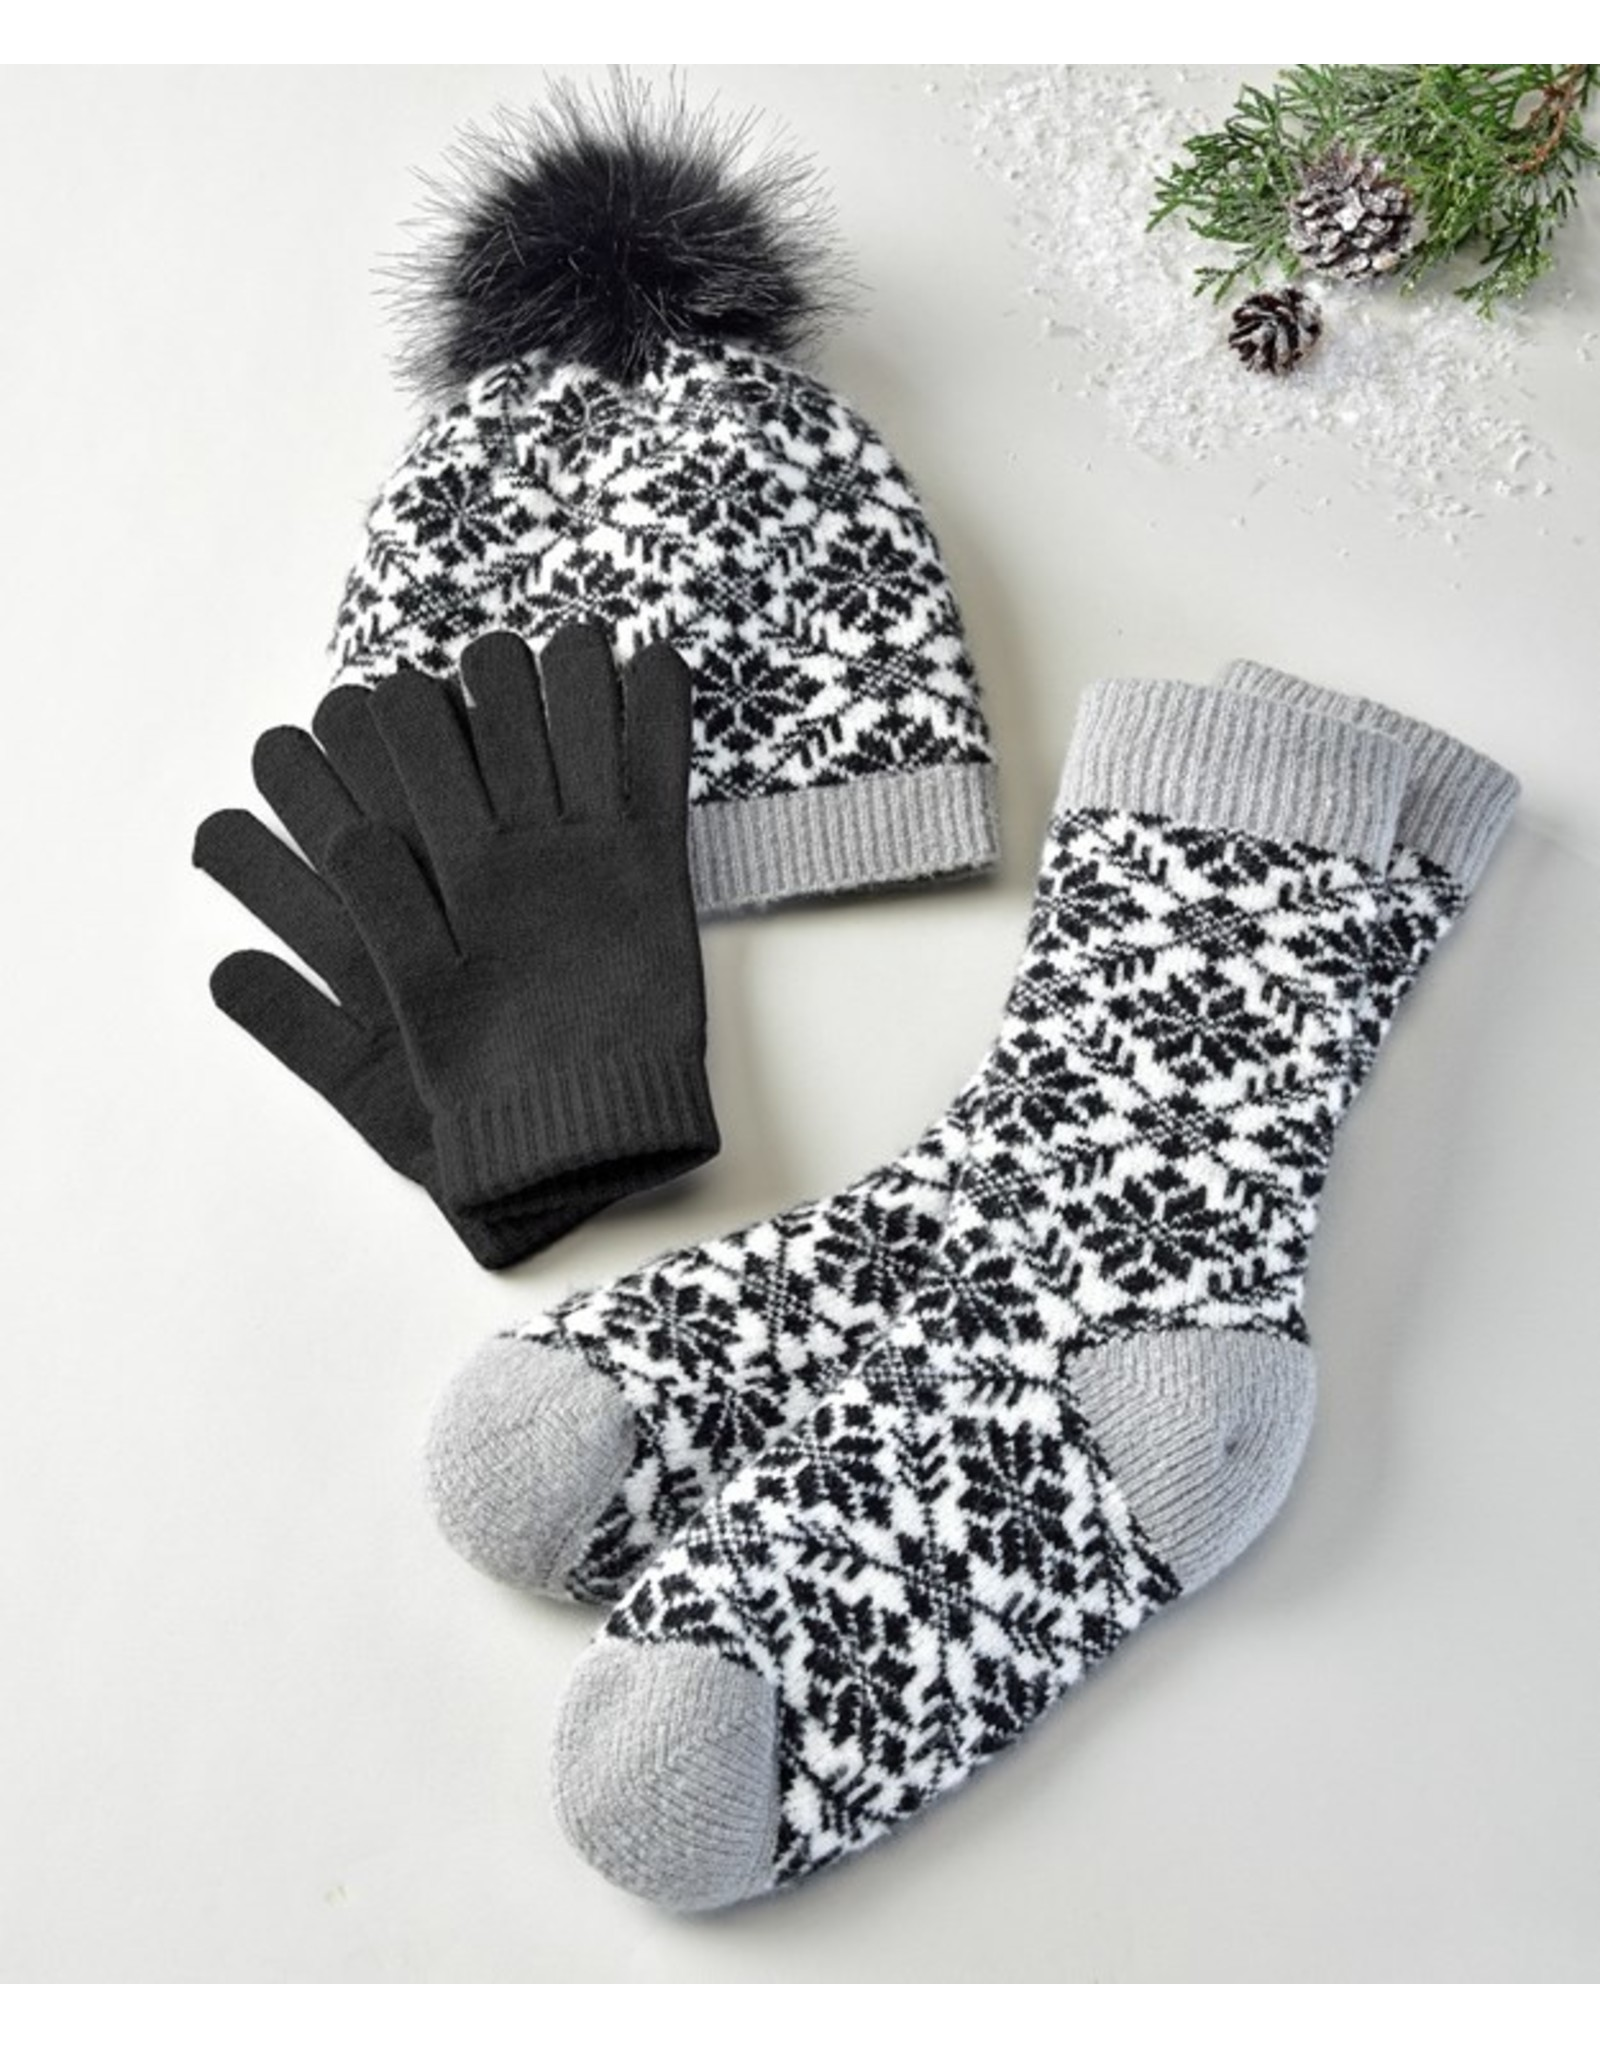 Winter Set in Black And White